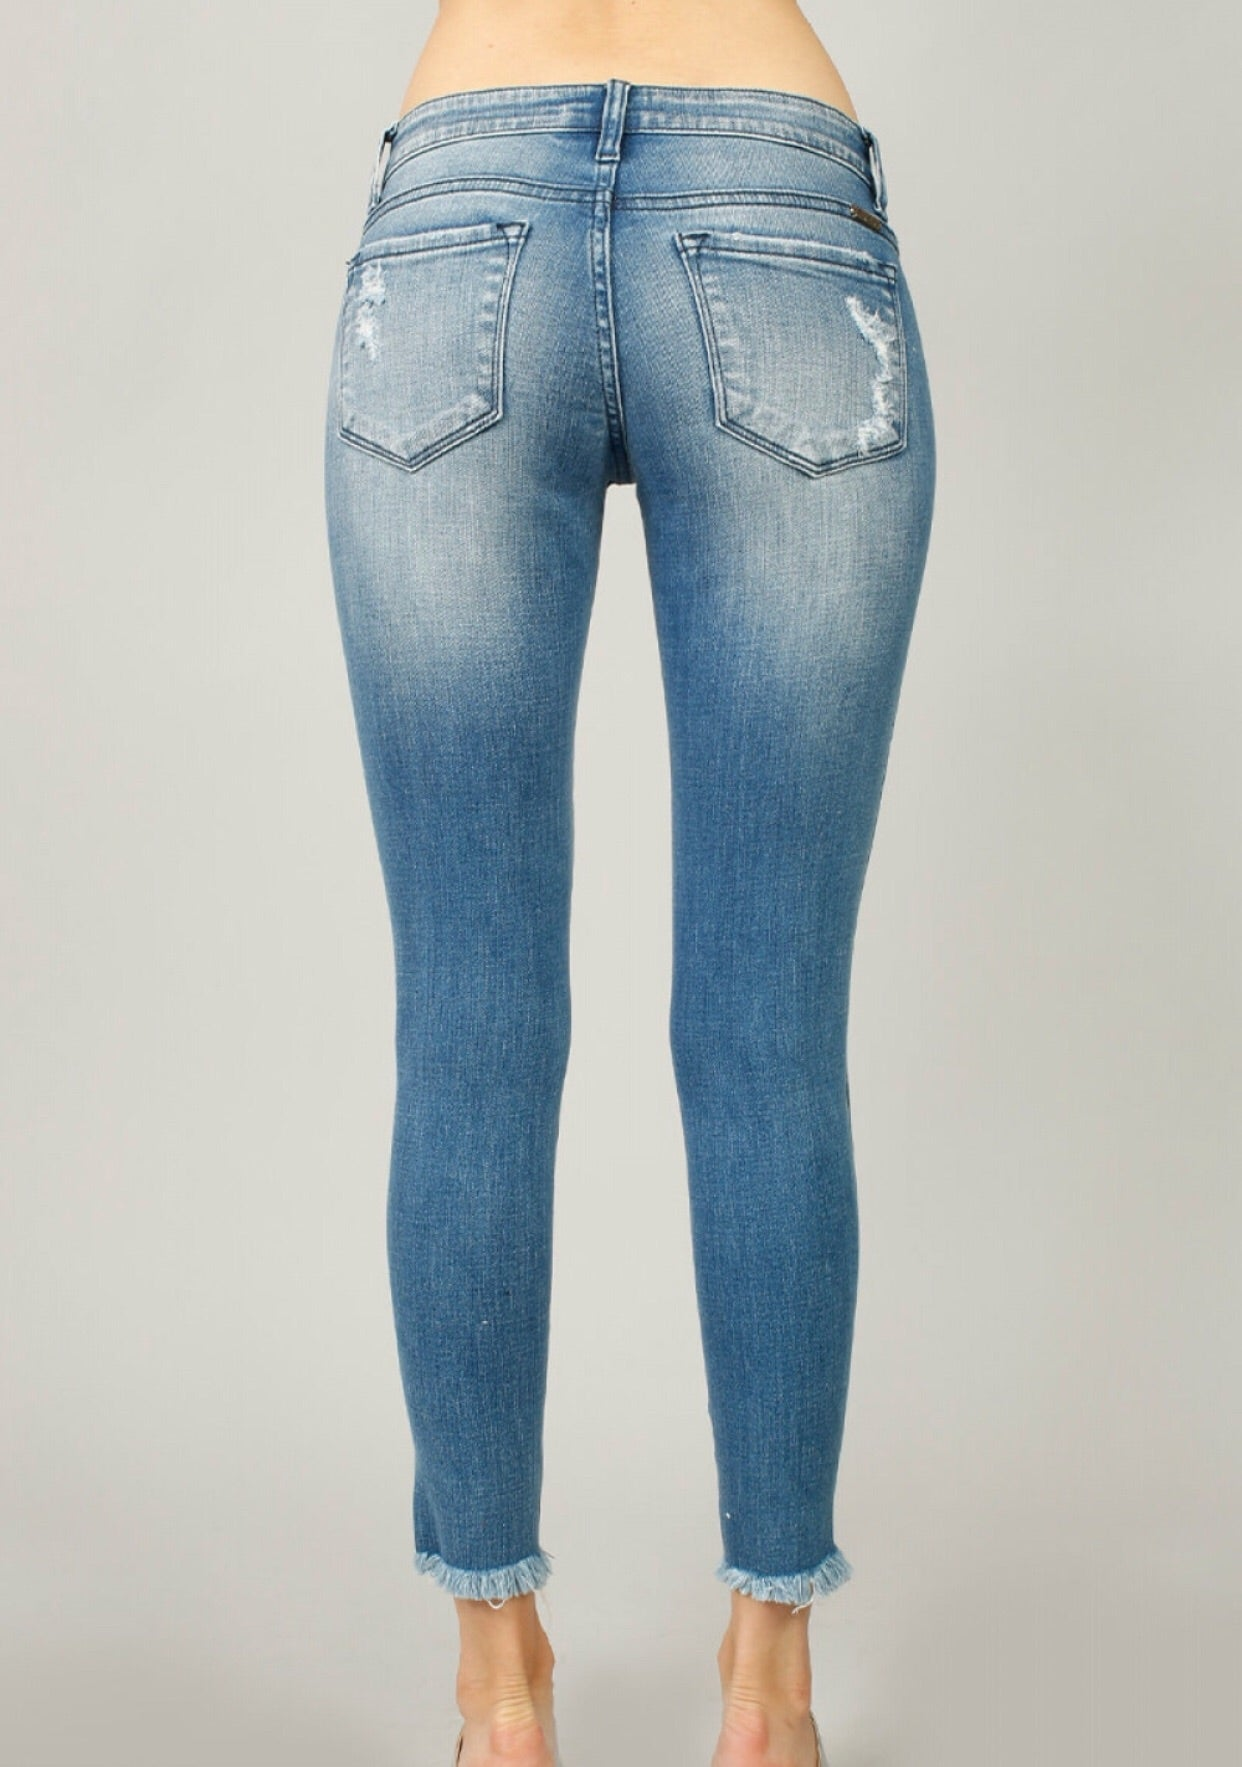 LT WASH SEMI CROPPED DISTRESSED DENIM - KanCan